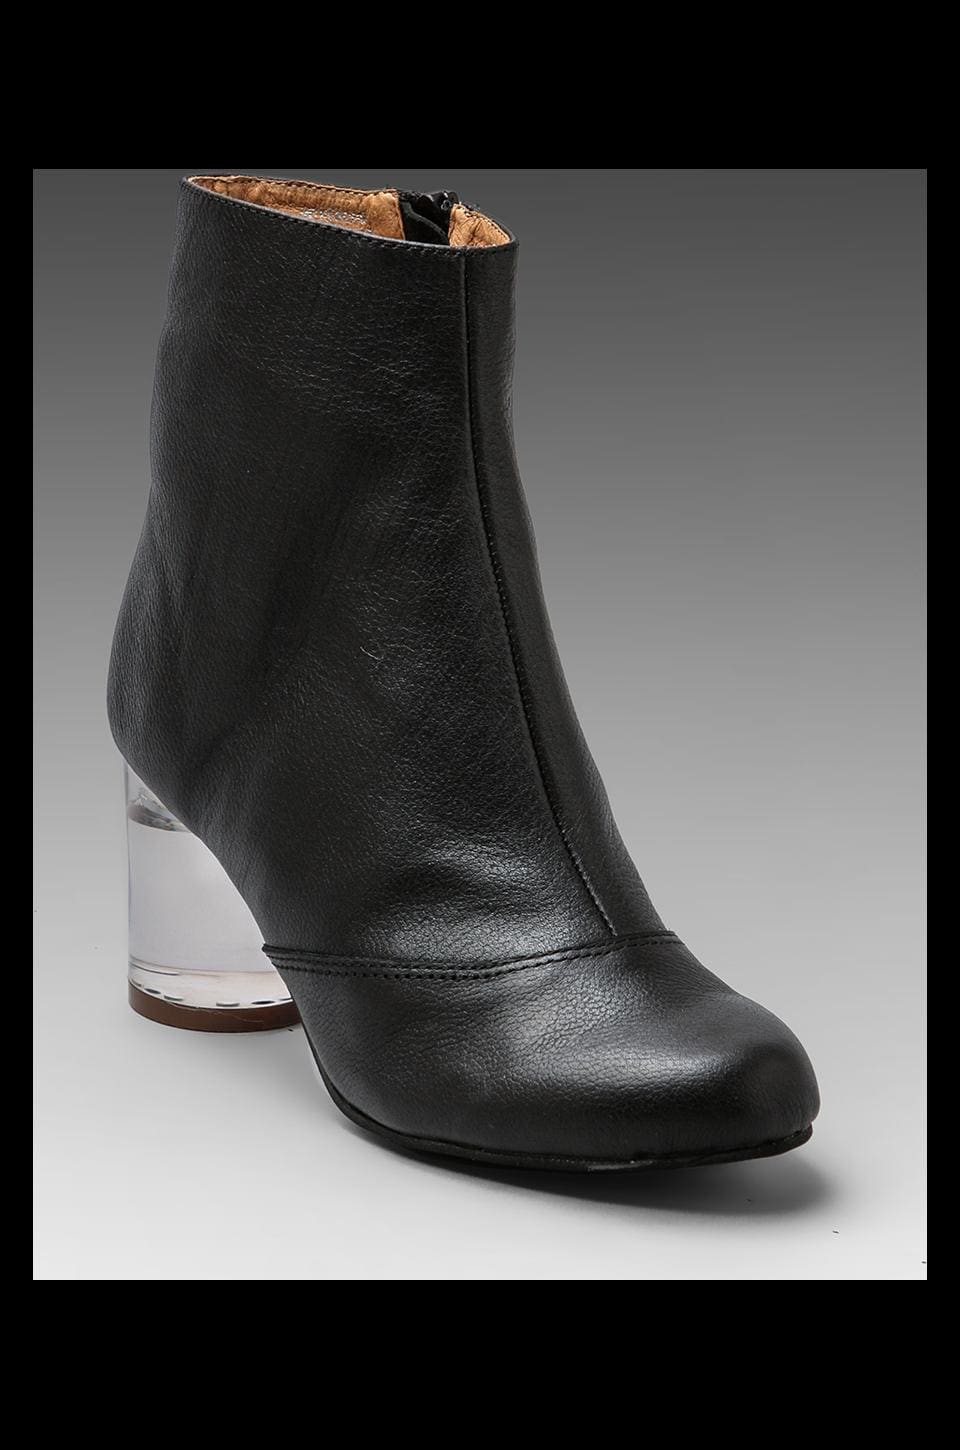 Jeffrey Campbell INTHEMOOD in Black Leather/Clear Heel